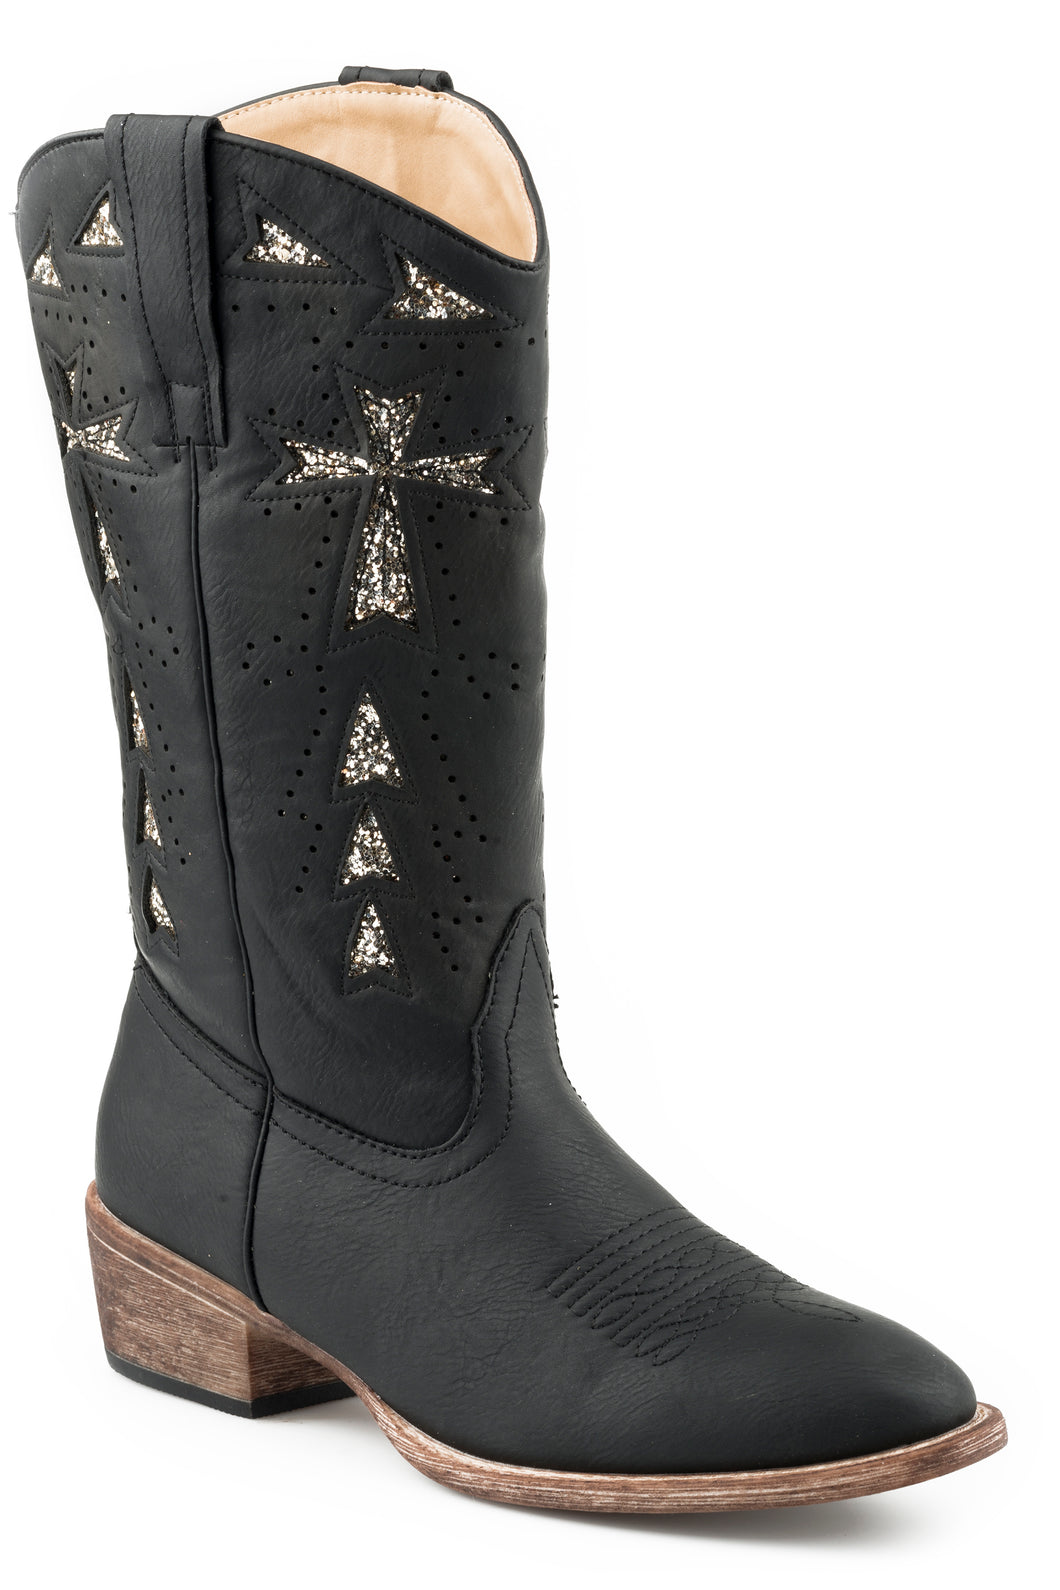 Glitter Cross Boot Womens Boots All Over Vintage Black Faux Leather